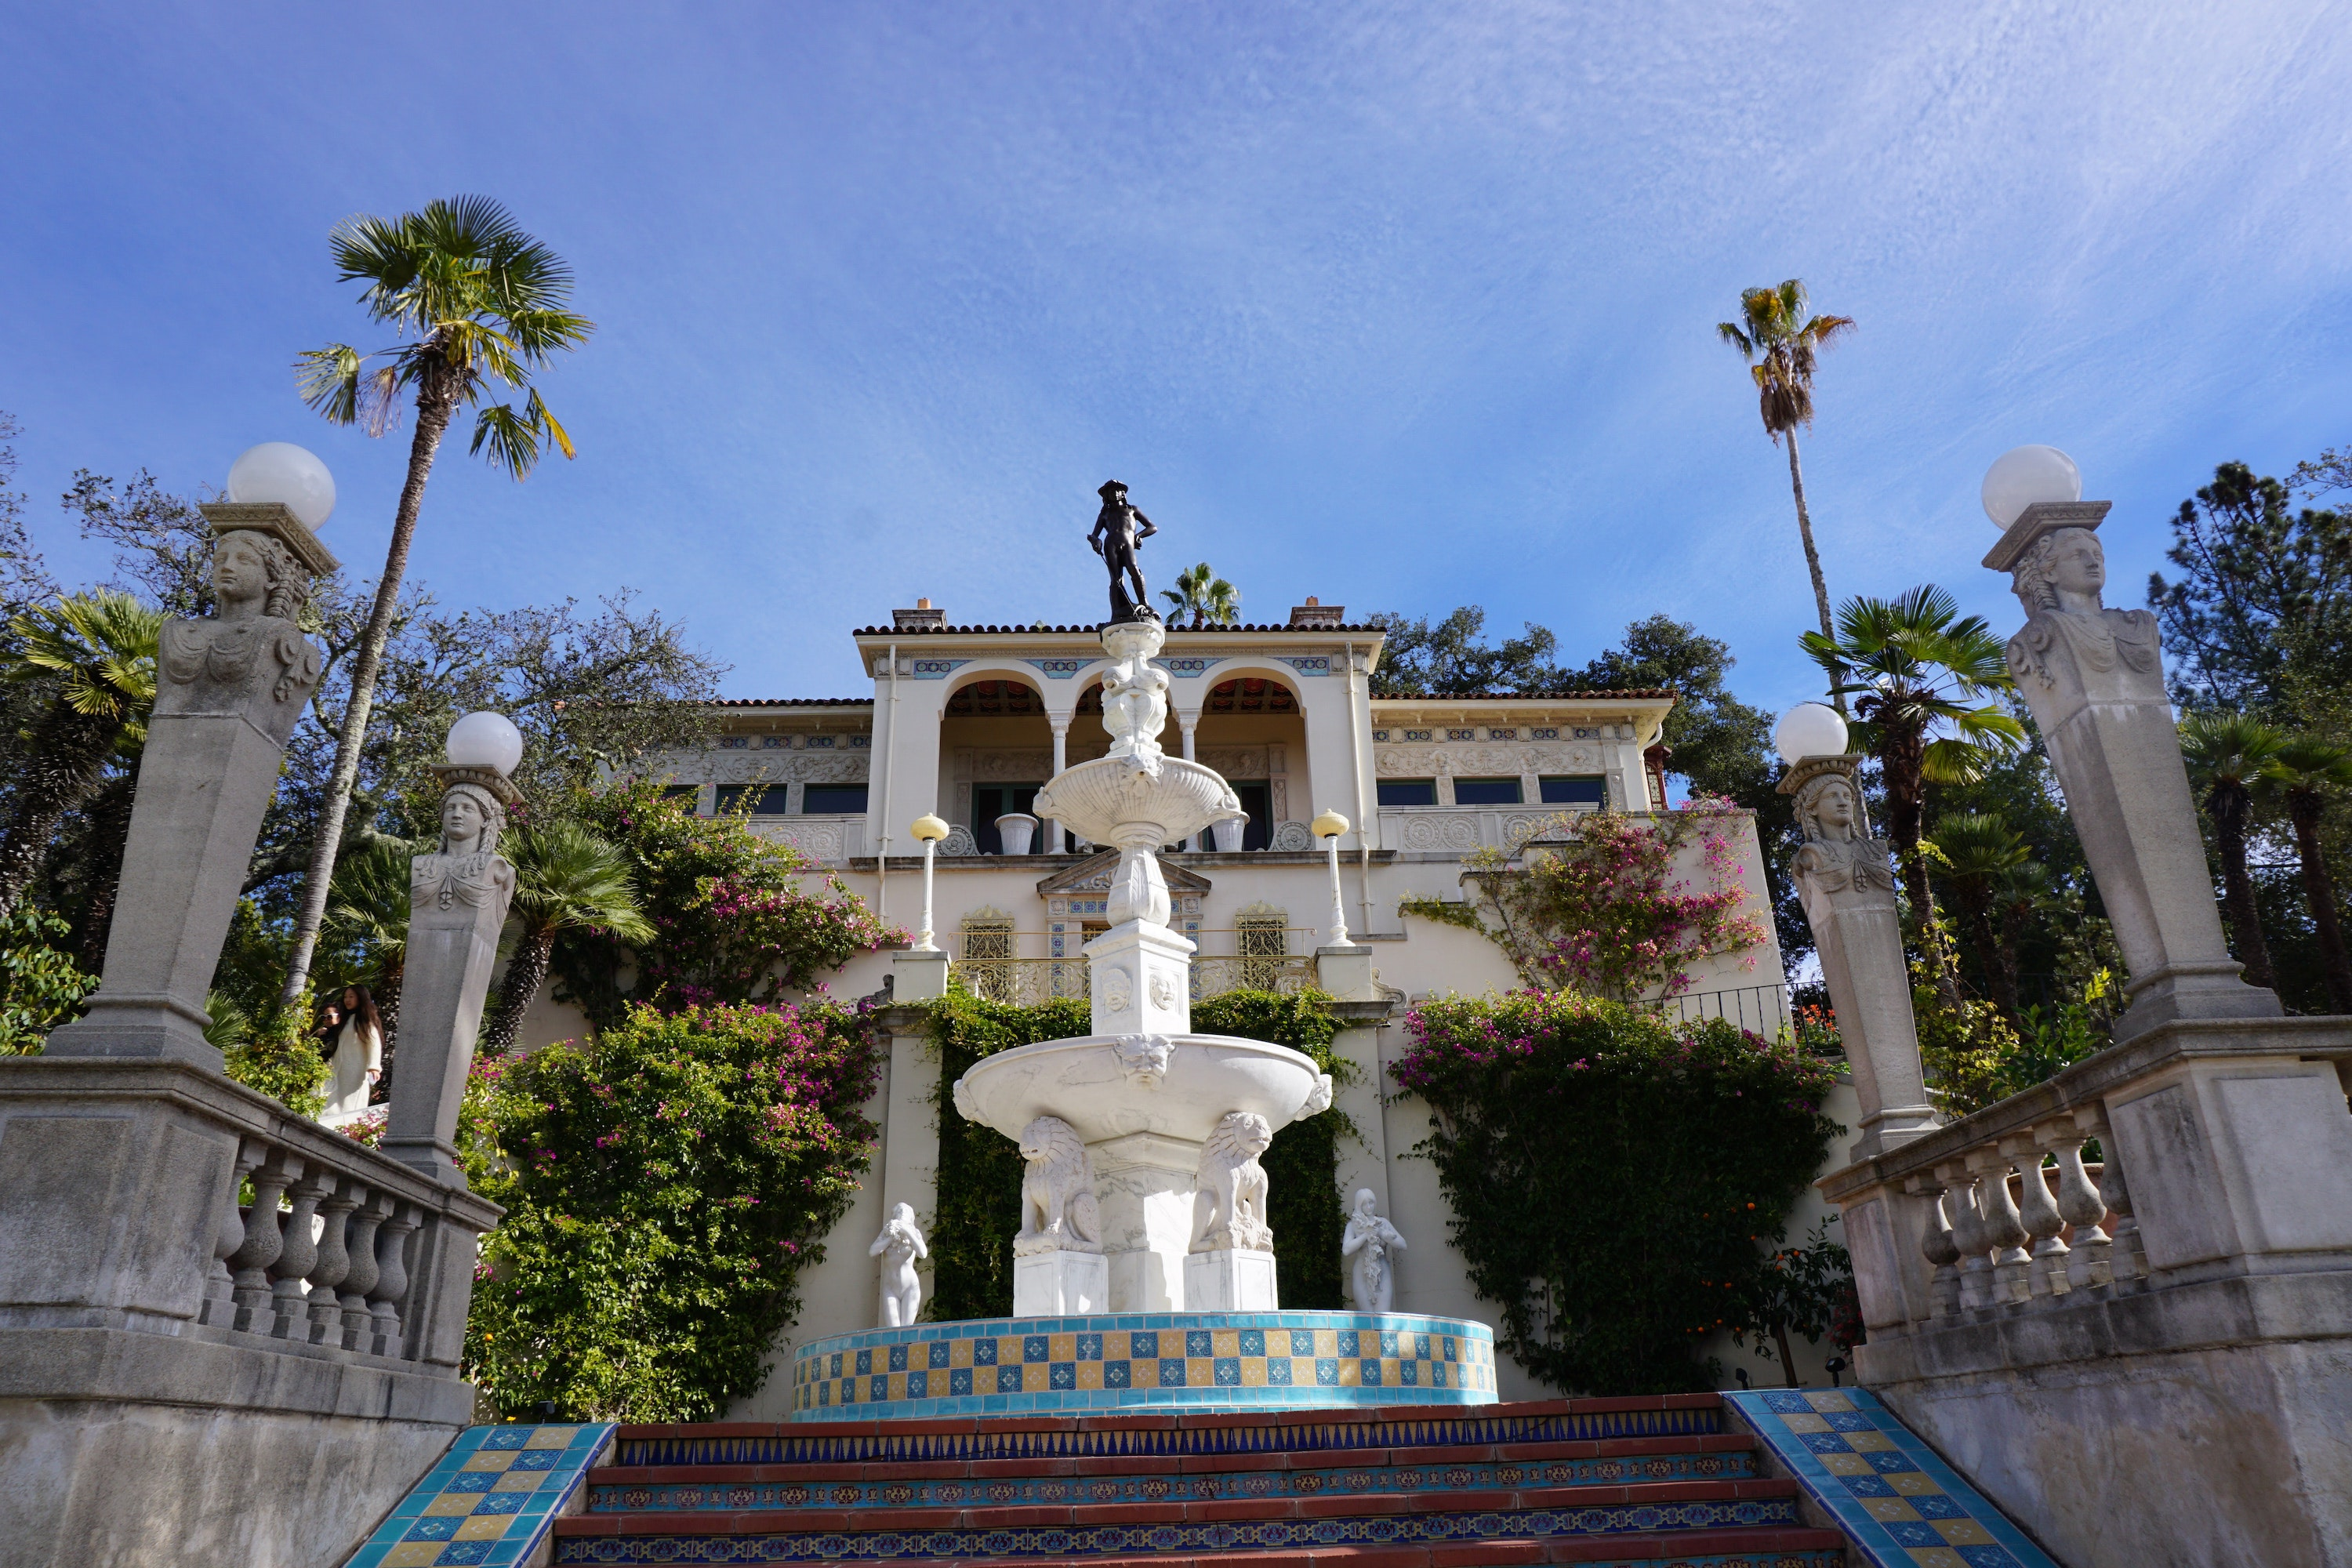 The entrance to Hearst Castle